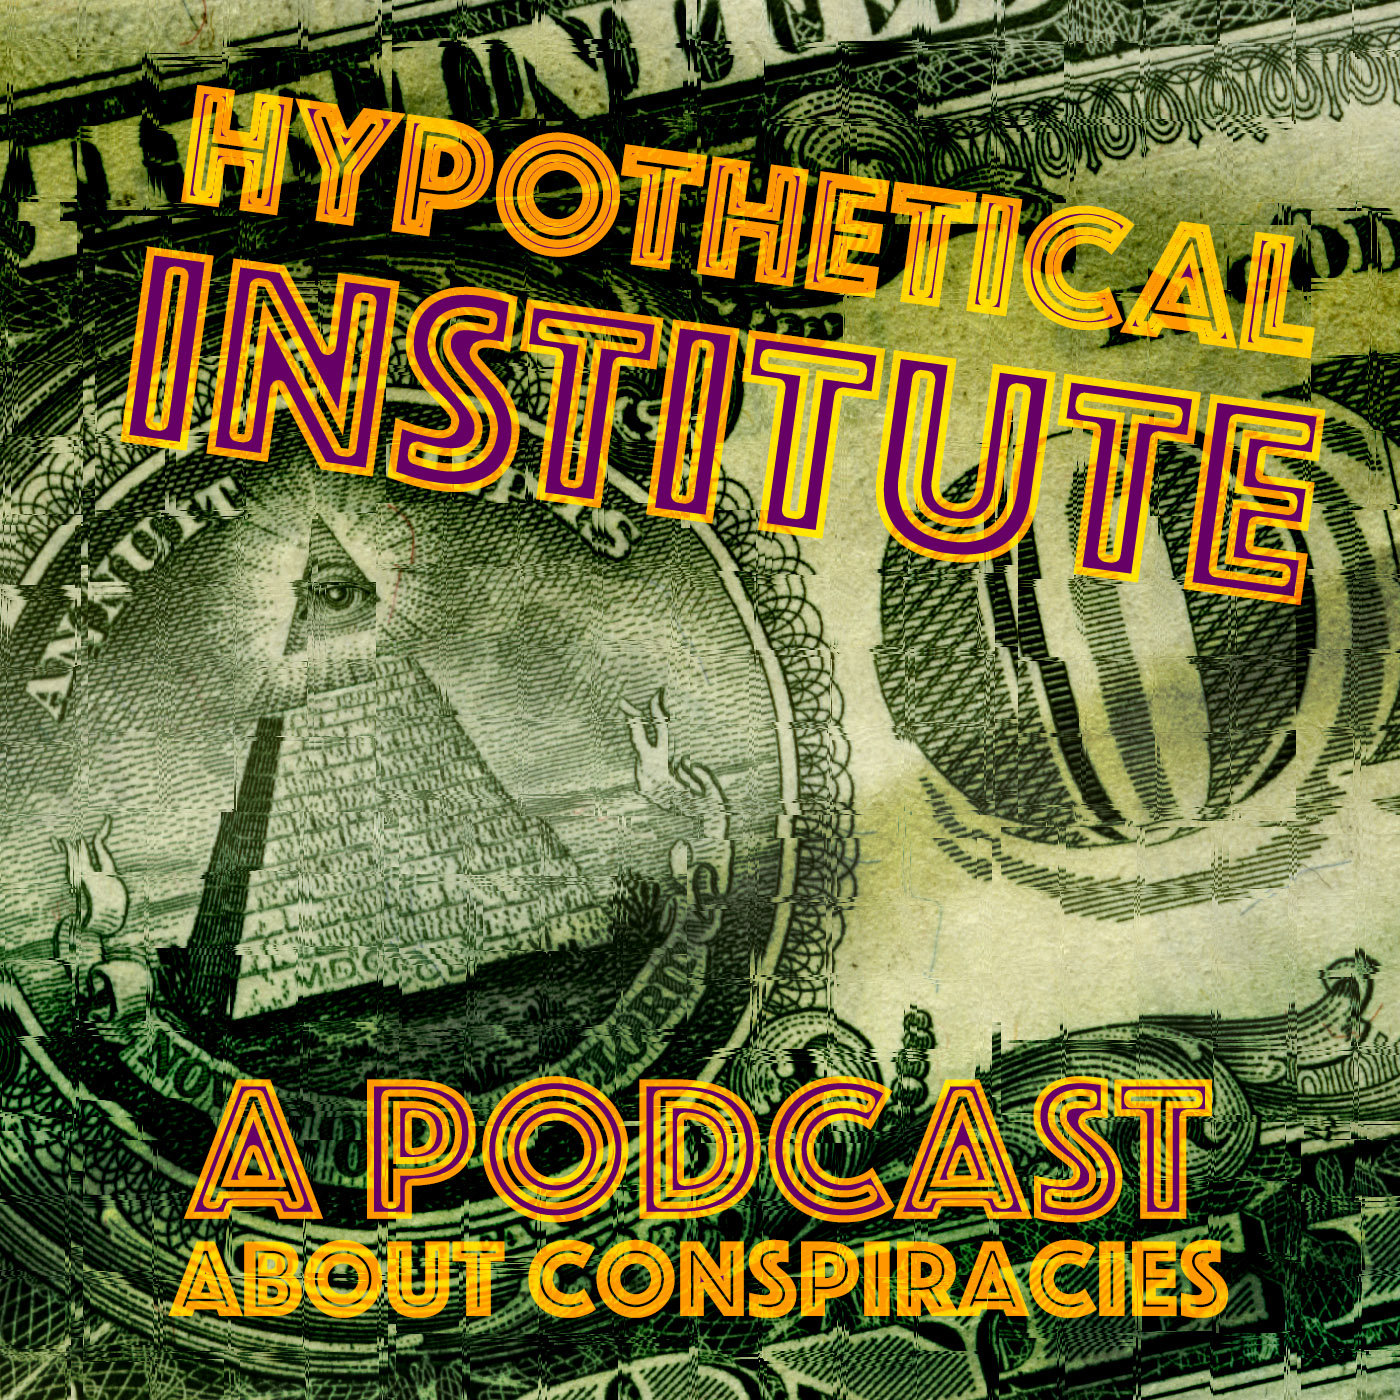 The Hypothetical Institute